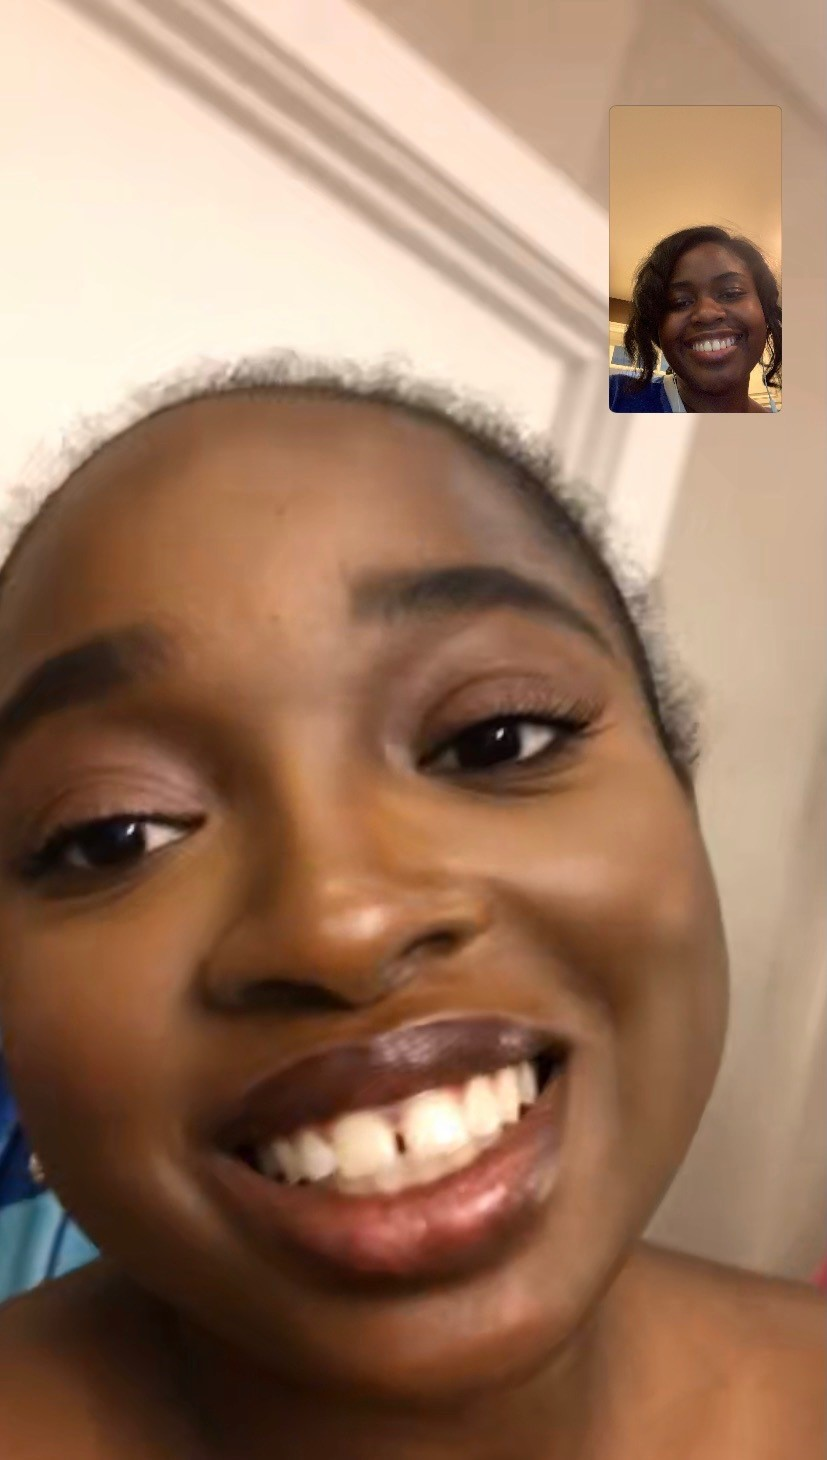 Princess and friend on facetime